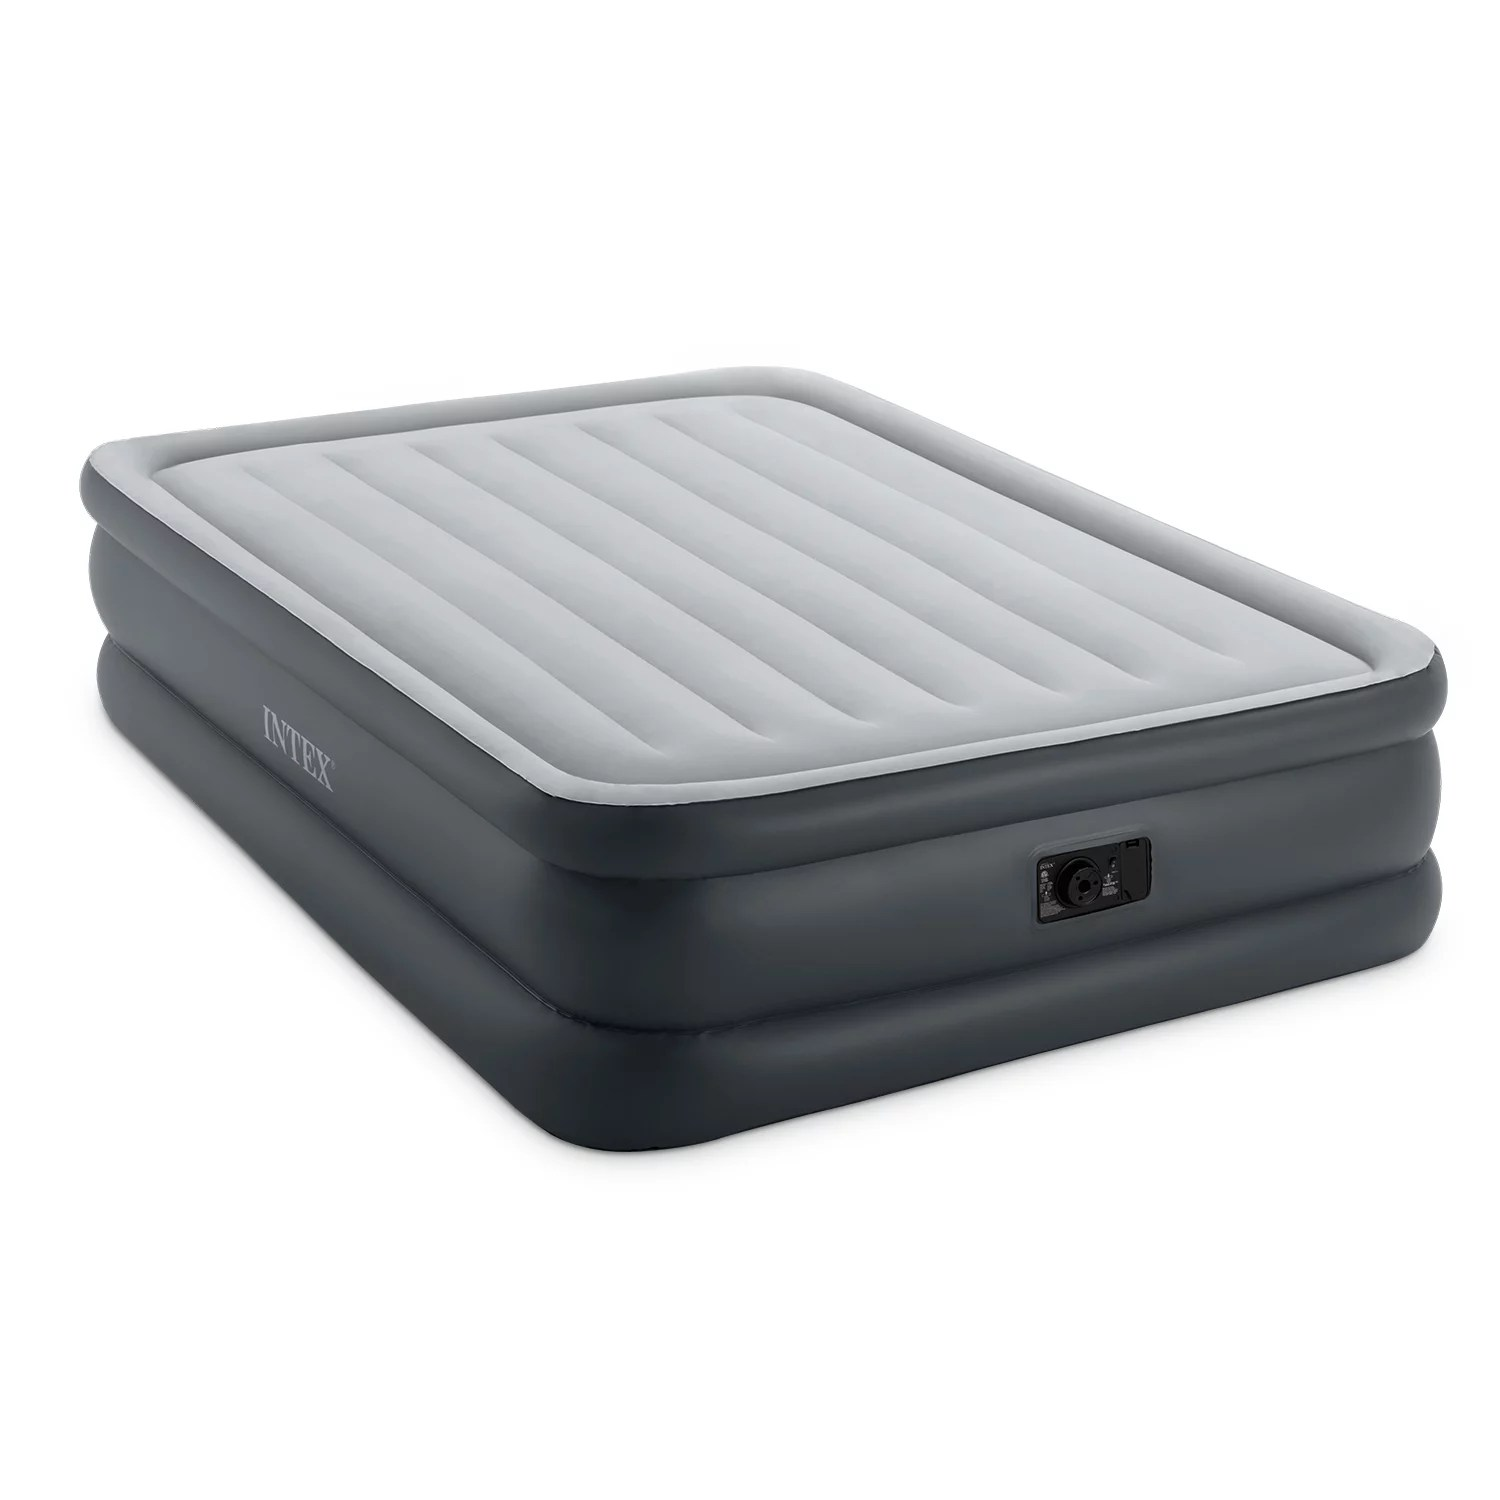 Intex Full Air Bed Intex Dura Beam Essential Rest Airbed With Built In Electric Pump Queen